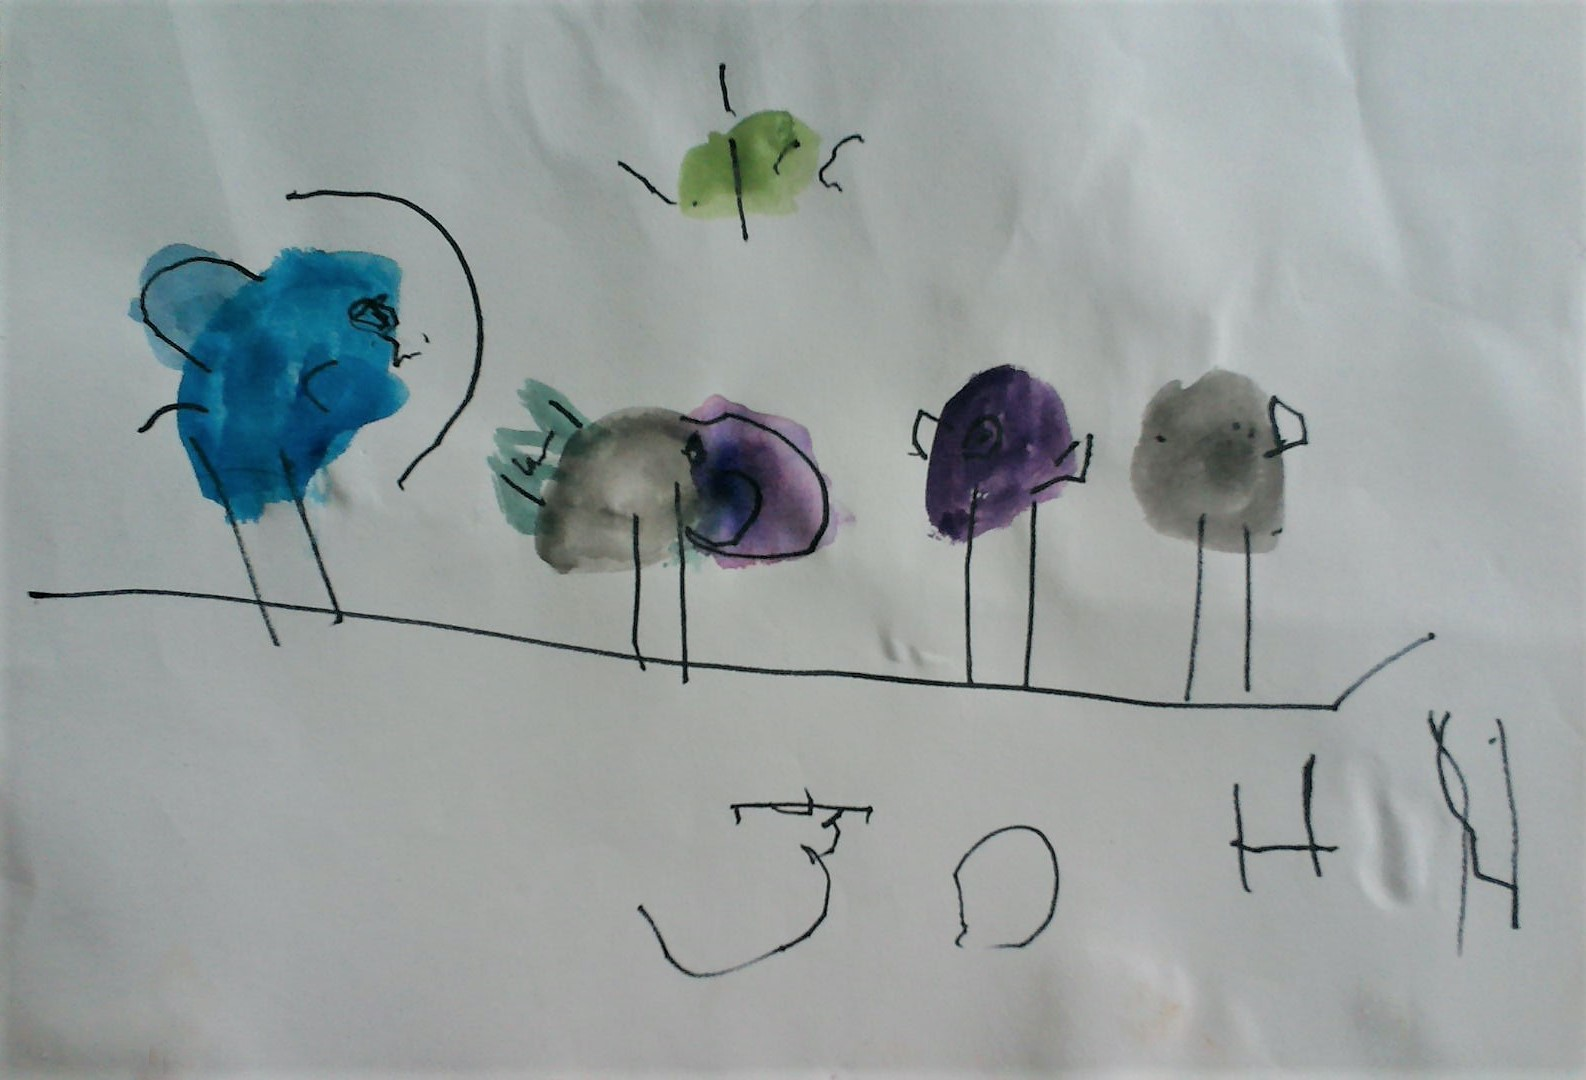 By John, 2 years old